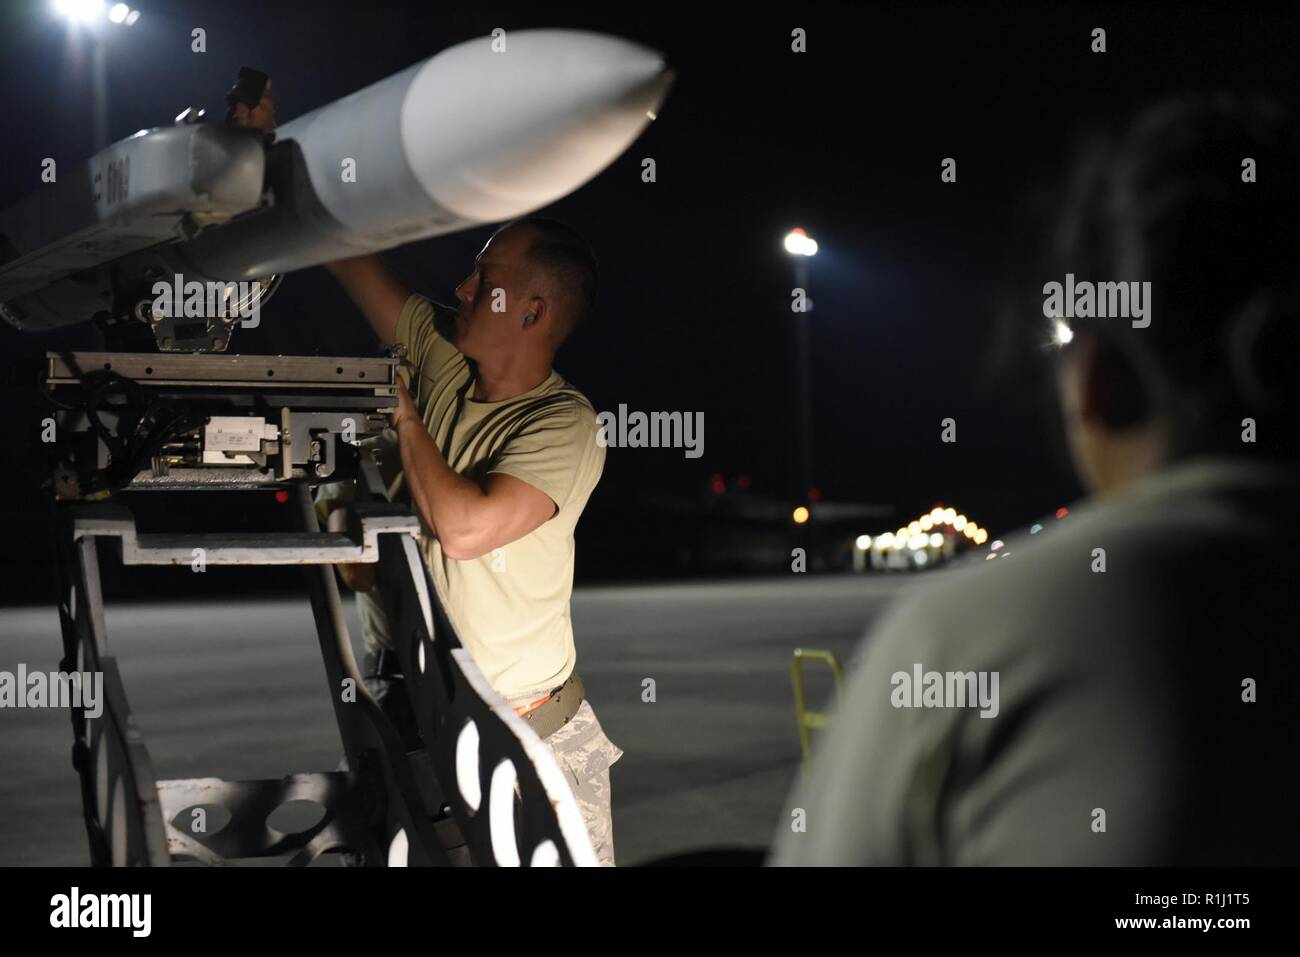 U.S. Air Force Staff Sgt. Sam Kimple, a weapons loader assigned to the 180th Fighter Wing, Ohio Air National Guard, loads live missiles onto an F-16 Fighting Falcon Sept. 20, 2018 during Combat Archer, a two-week air-to-air Weapons System Evaluation Program to prepare and evaluate operational fighter squadrons' readiness for combat operations, at Tyndall Air Force Base, Florida. - Stock Image